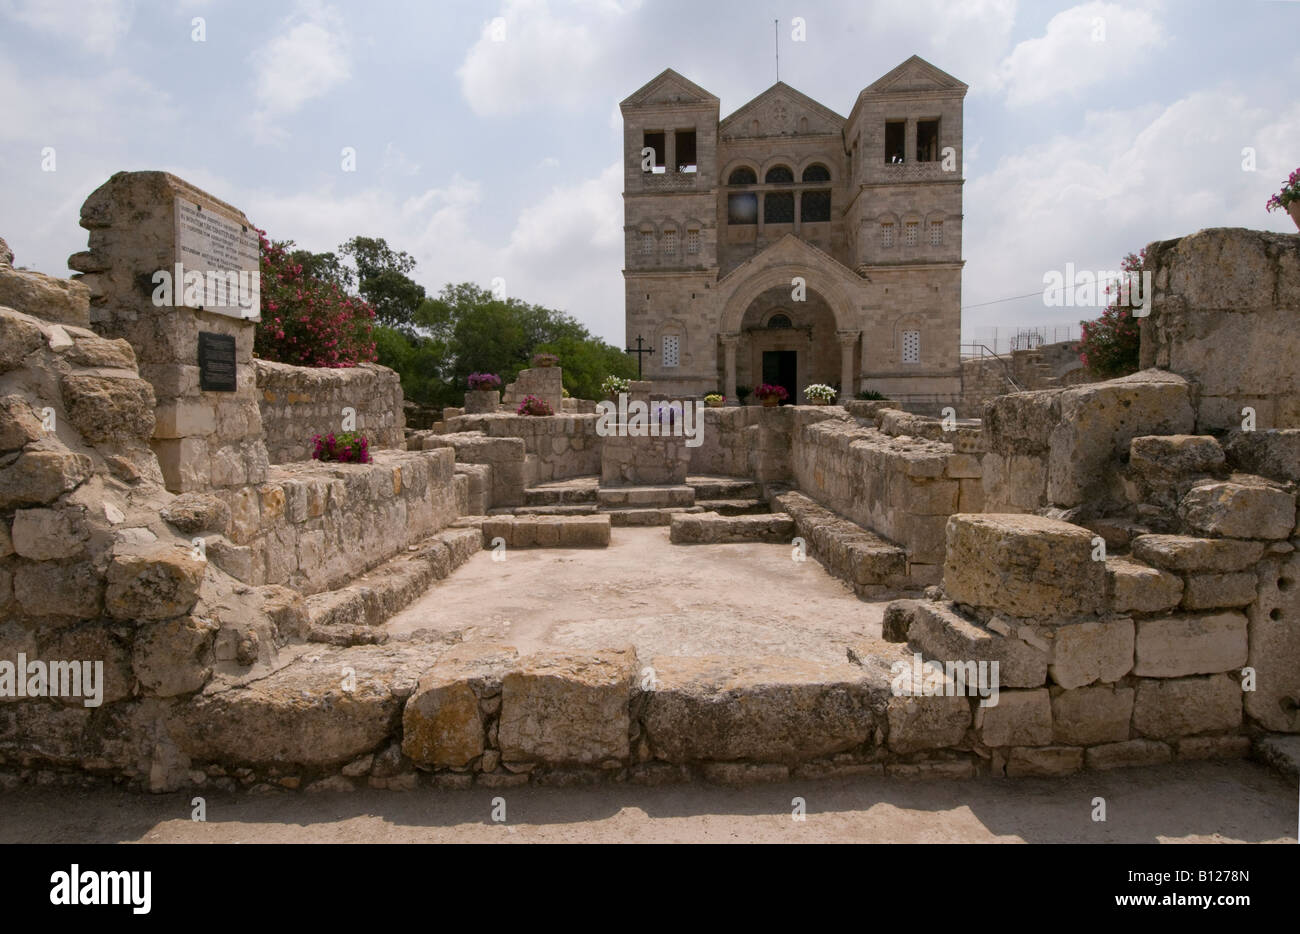 Holy Mount Tabor - Place of the Transfiguration 98